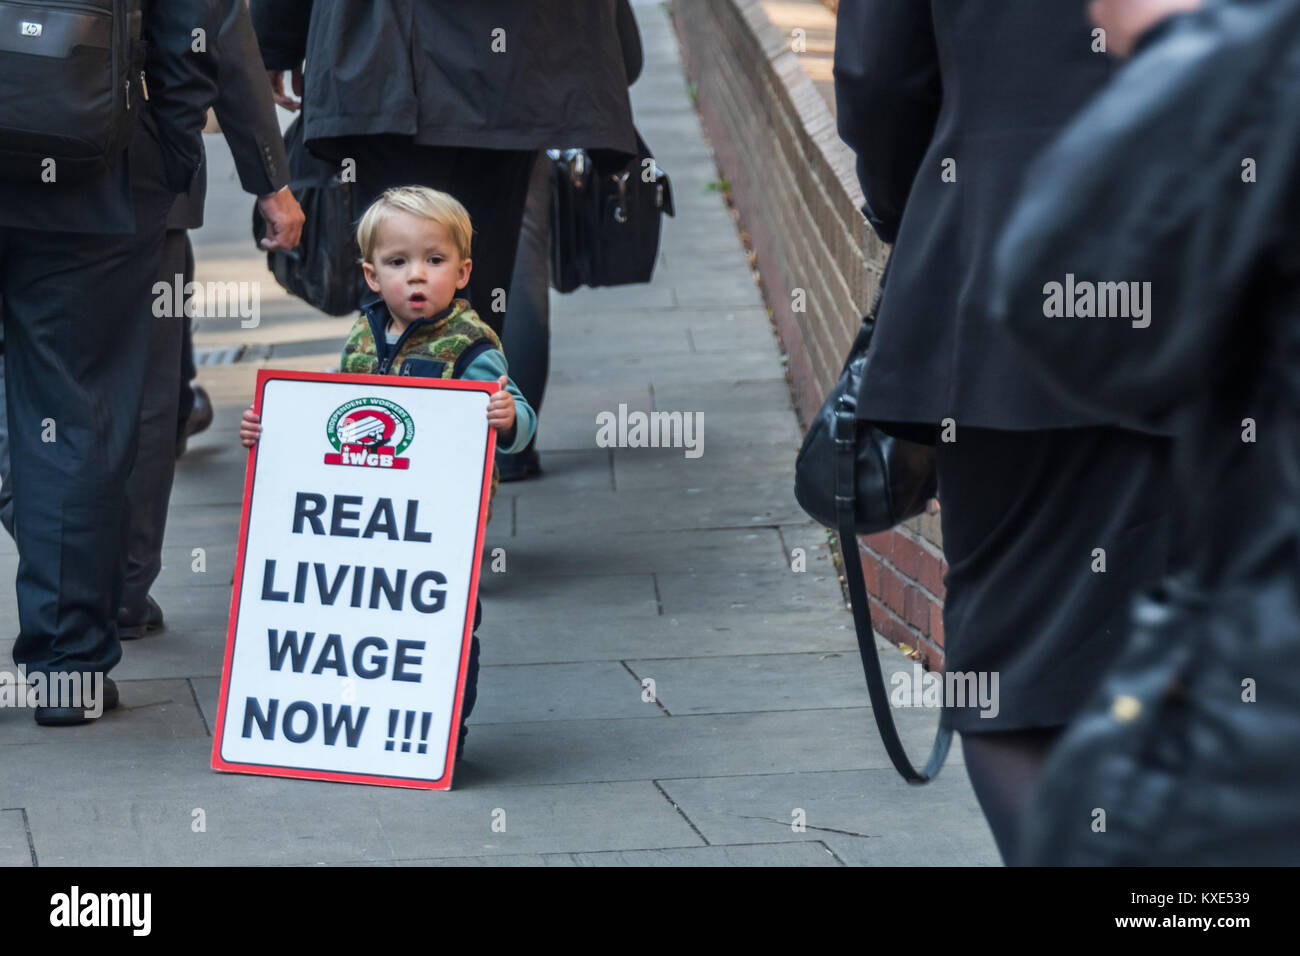 Lawyers with bulding briefcases walk pas a young IWGB supporter holding a placard 'Real Living Wage Now' - Stock Image